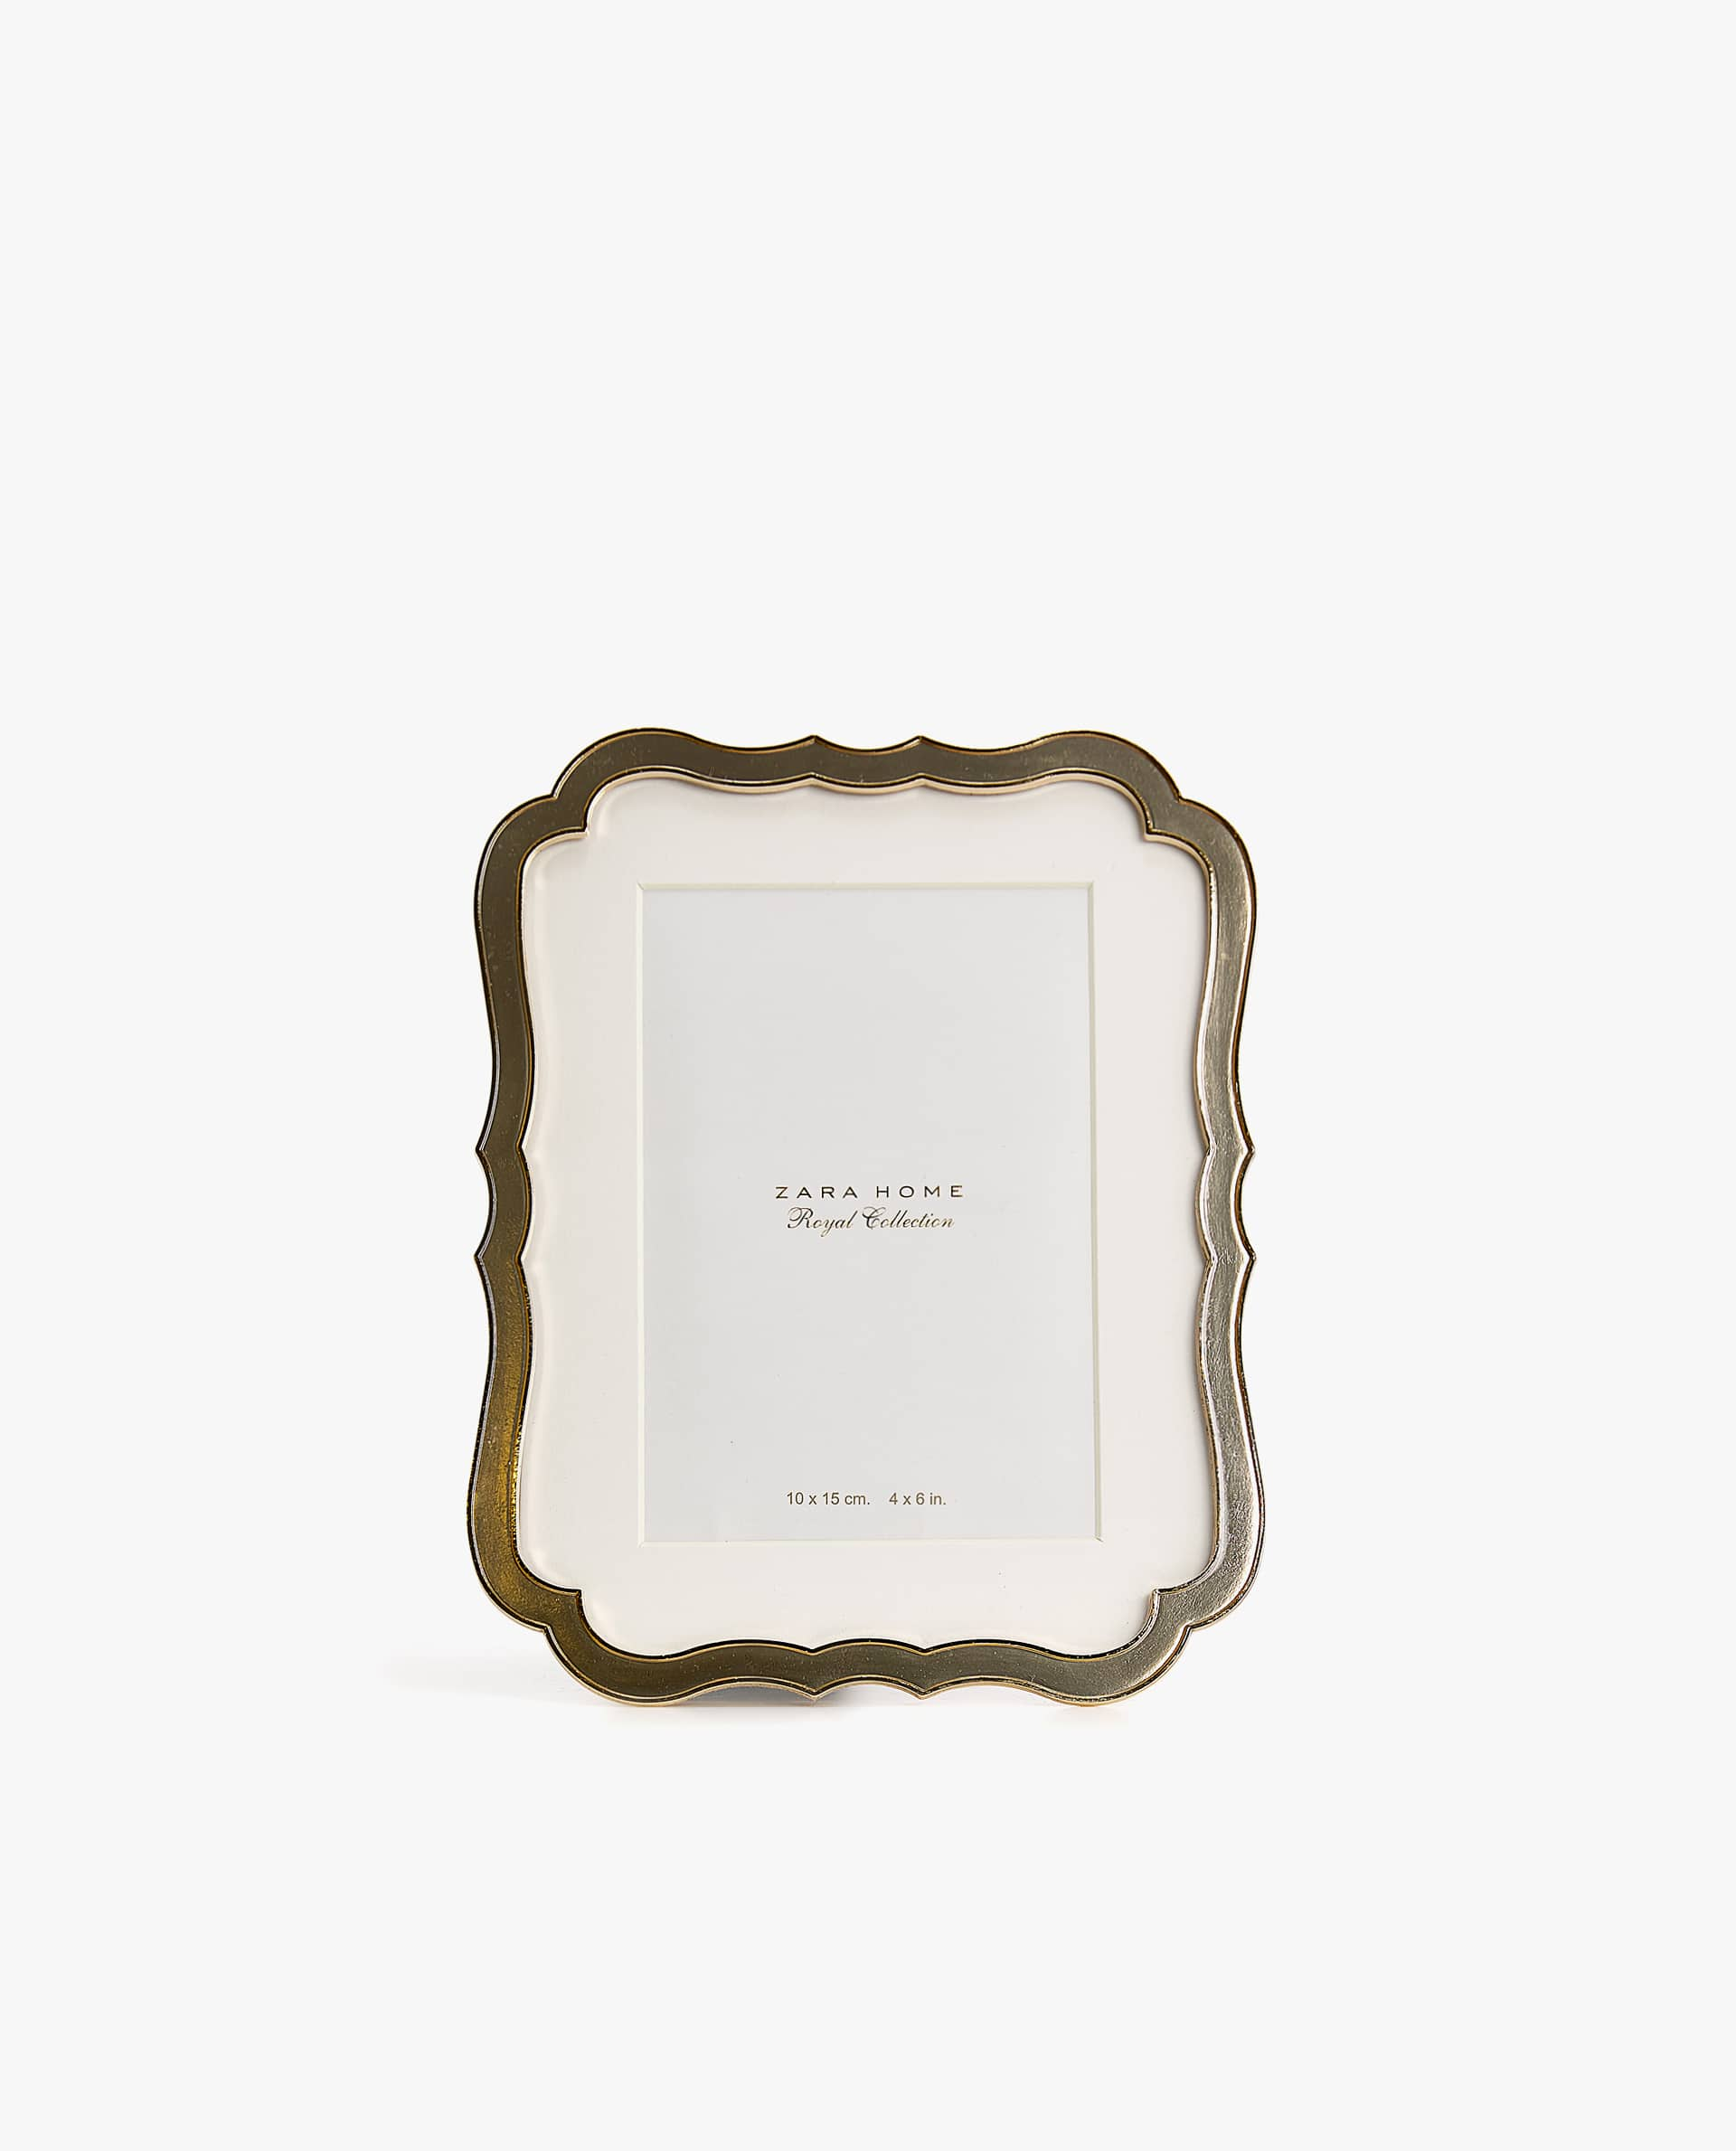 15a844df36b5 SCALLOPED GOLD-FINISH FRAME - See all - PHOTO FRAMES - DECORATION ...